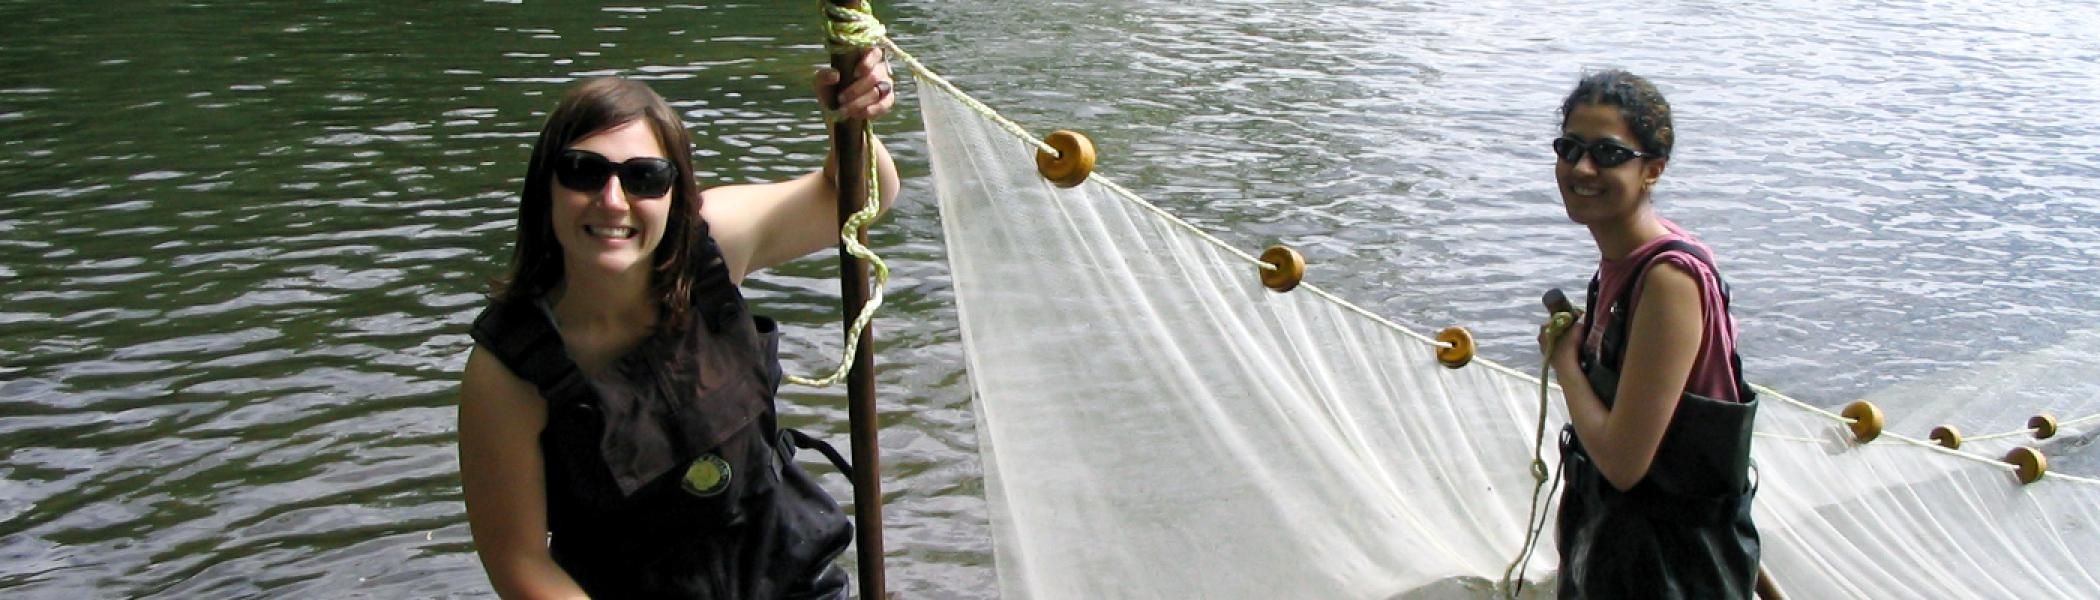 2 female grad students wearing hip waders in water holding net taking samples and smiling at camera with sunglasses on